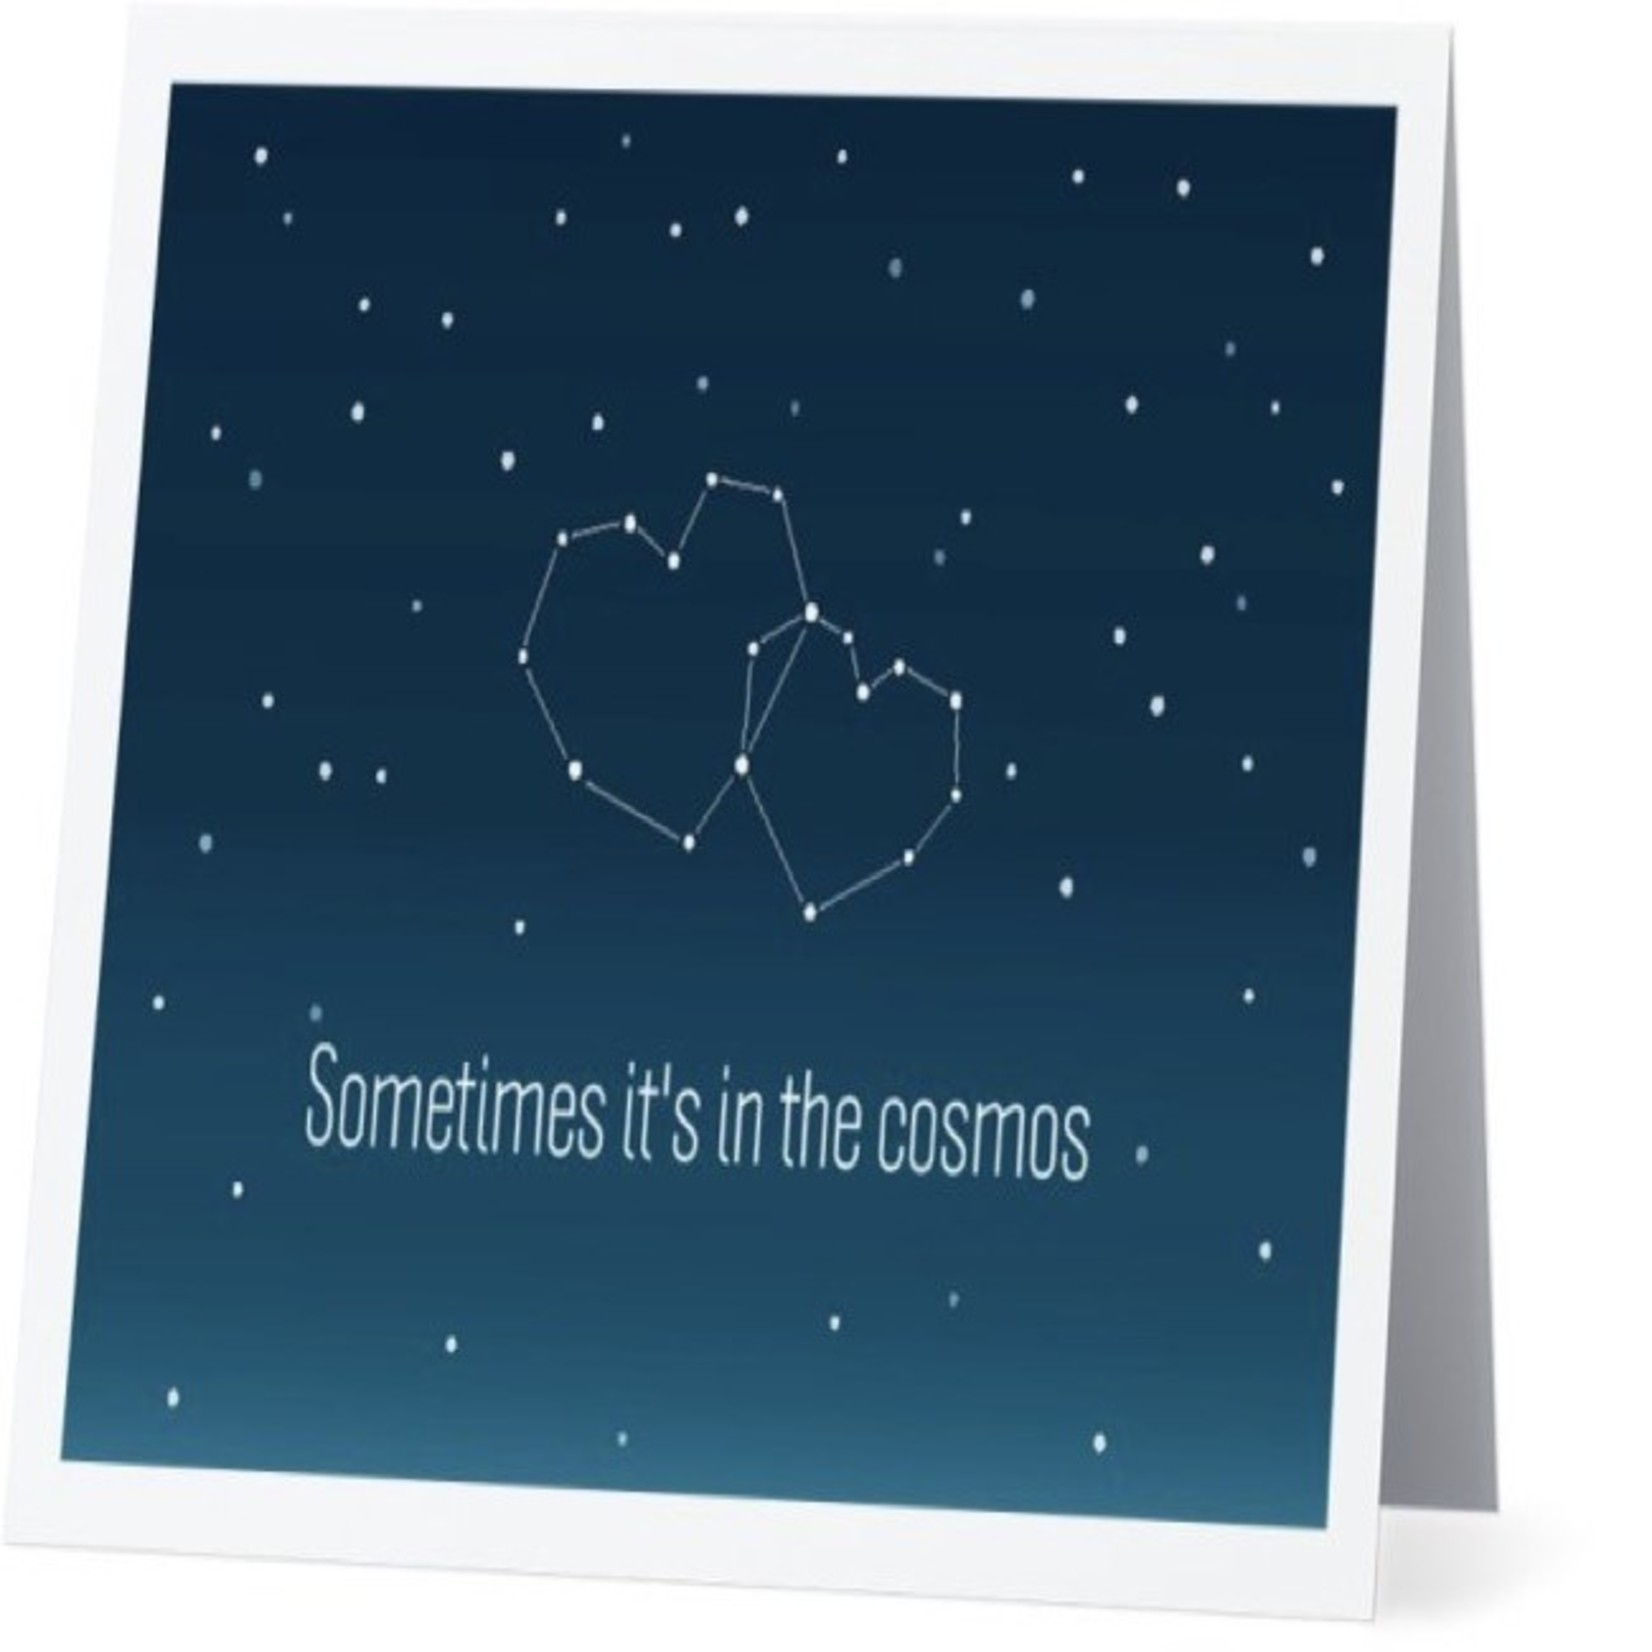 Bad Annie's Card #010 - Sometimes Its In The Cosmos